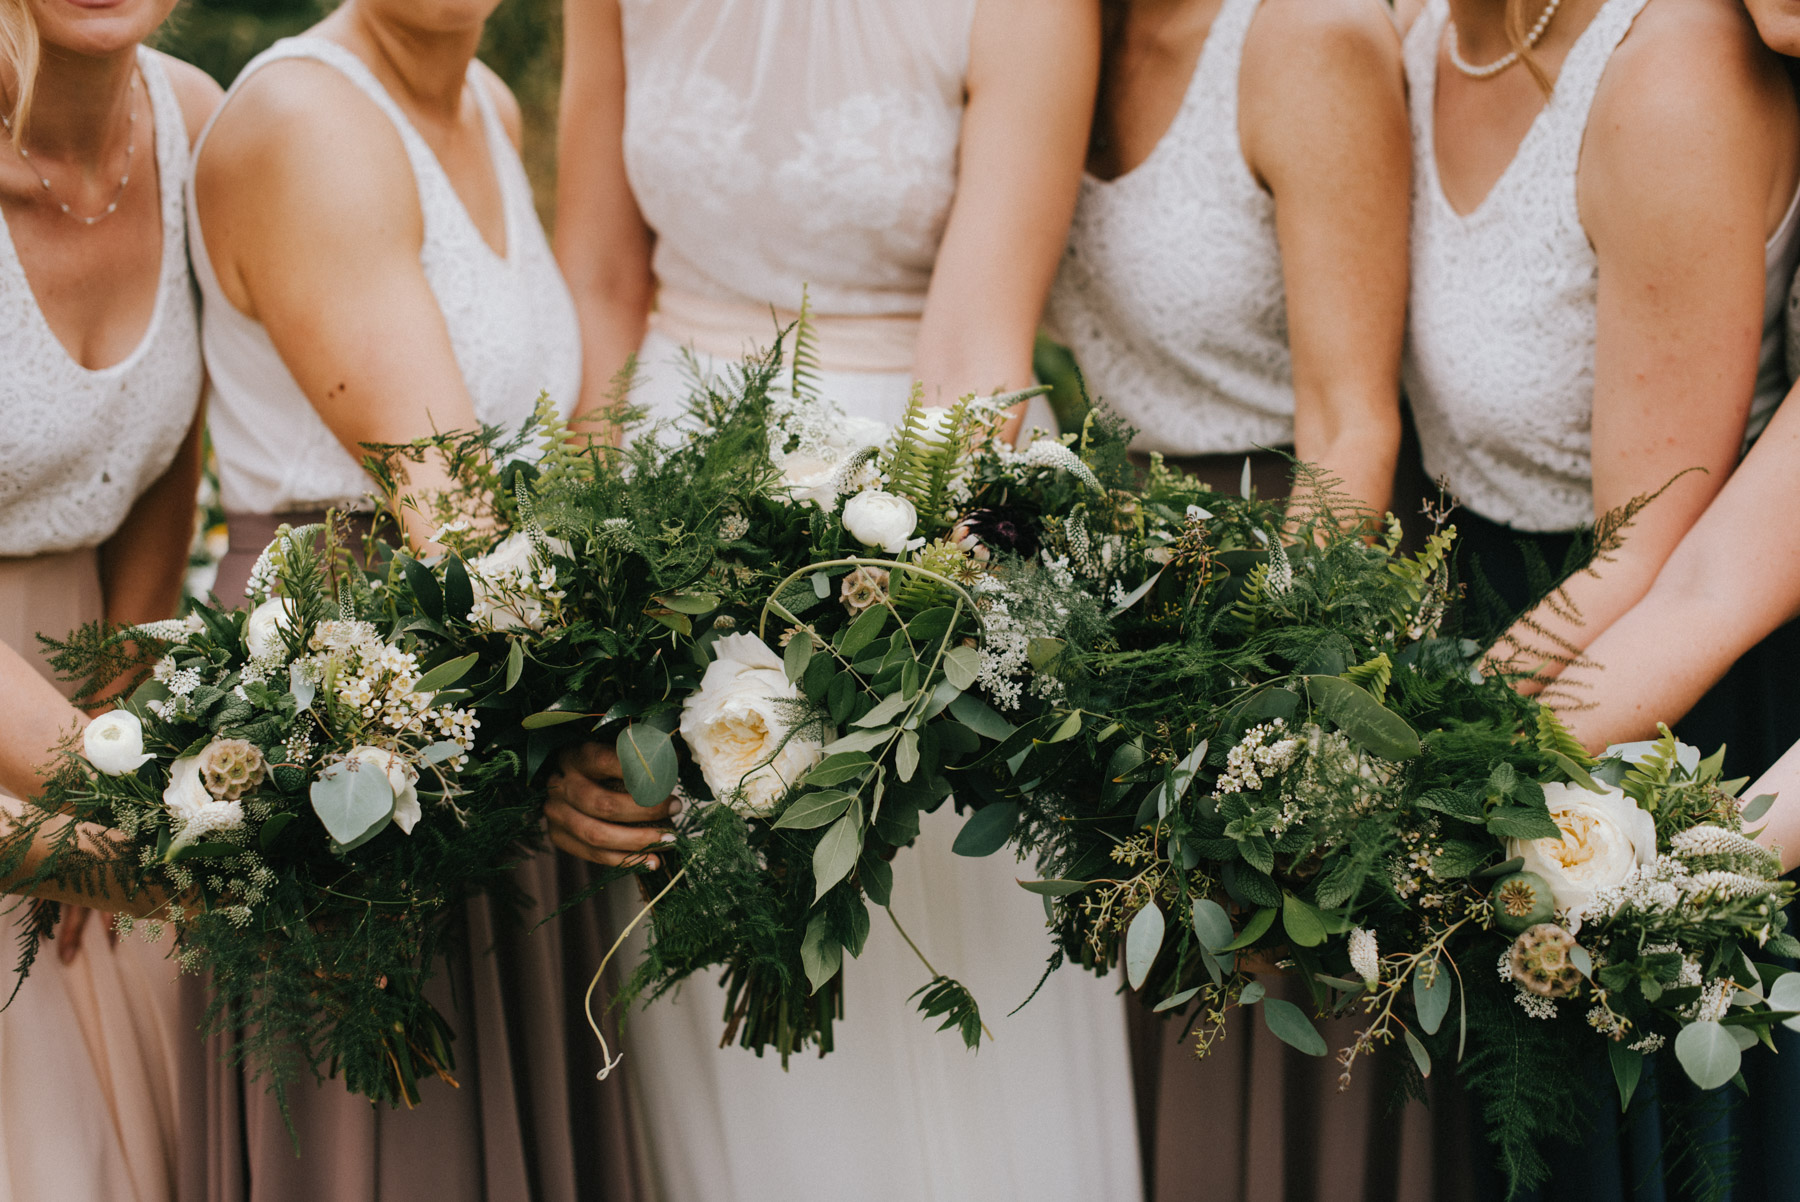 Lindsey and her bridesmaids bouquets on her wedding day at Hudson Gardens in Littleton, Colorado. Her flowers included a mix of eucalyptus pods, lots of greenery and white flowers.